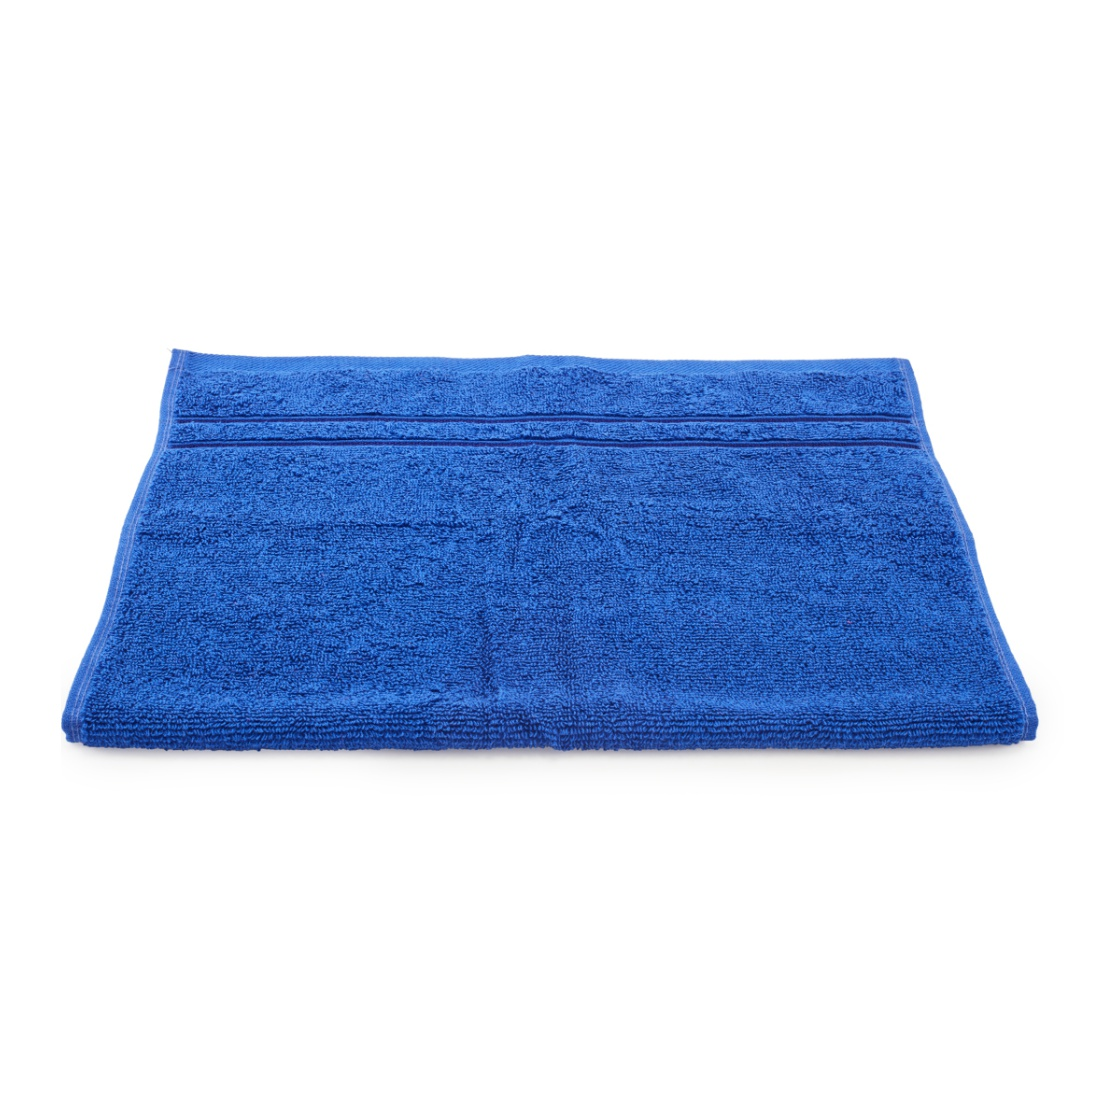 Nora Combed Cotton Hand Towels in Blue Colour by Living Essence